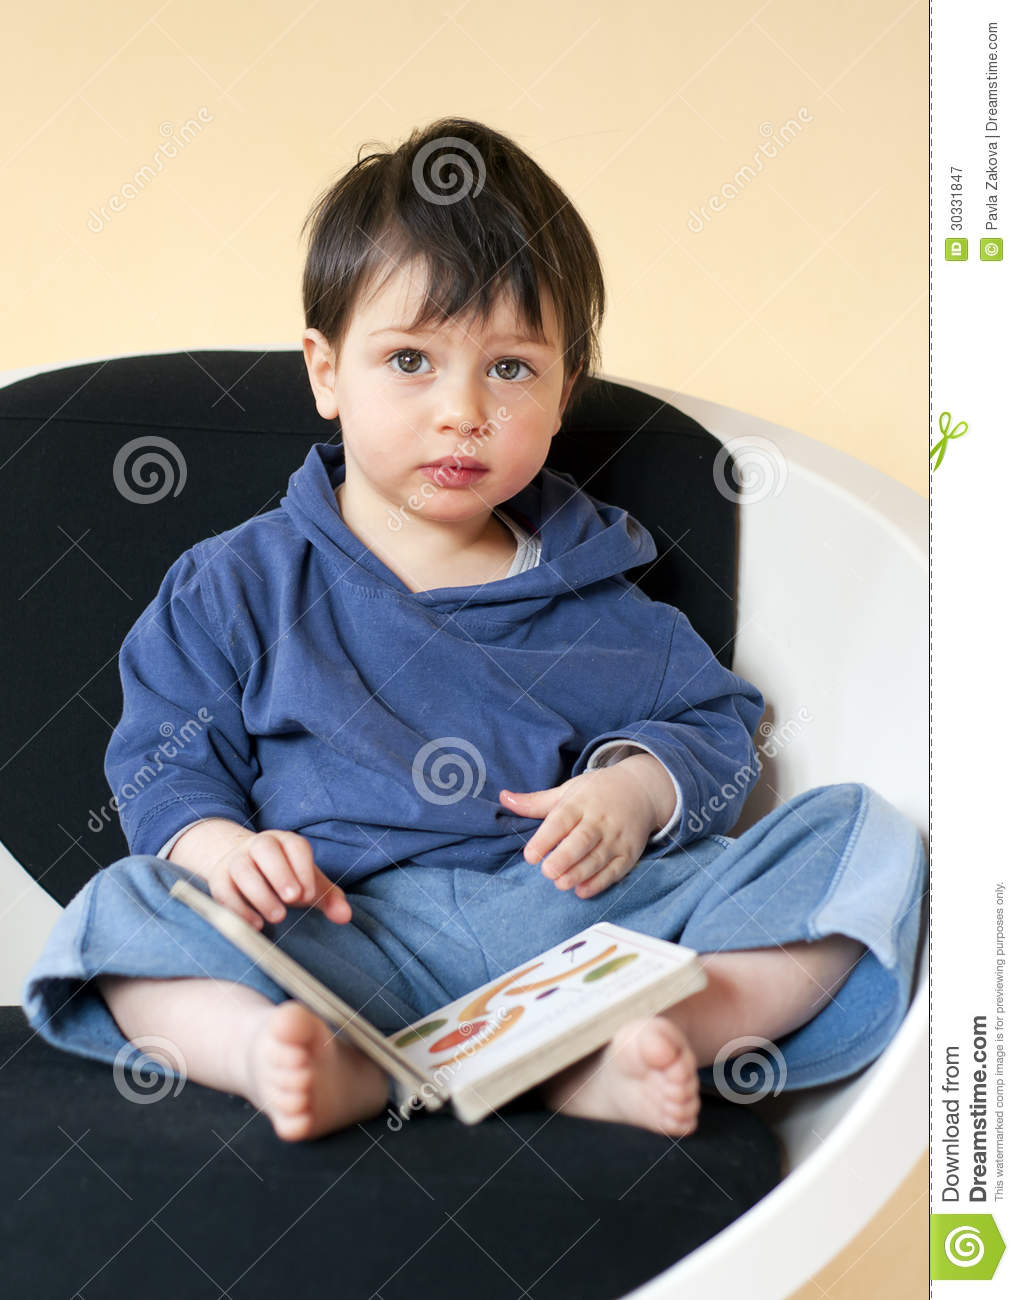 Child reading royalty free stock photography image 30331847 for Toddler sitting chair